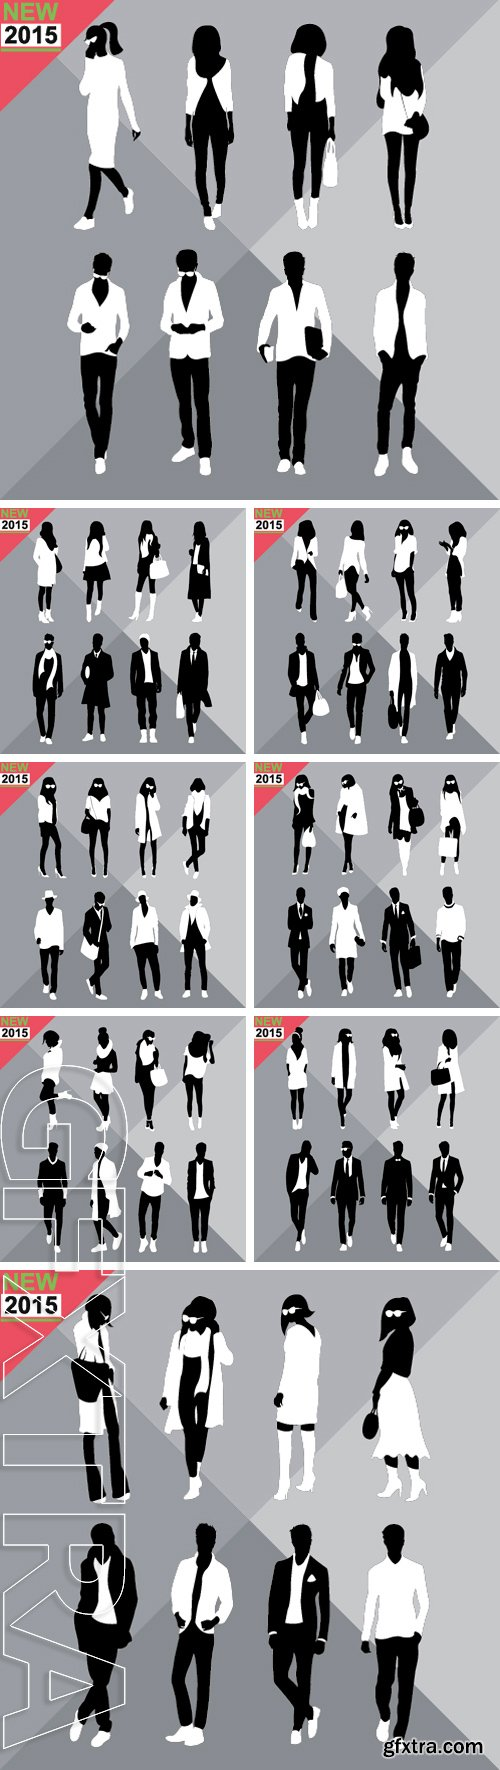 Stock Vectors - Set of men and women black silhouettes, editable